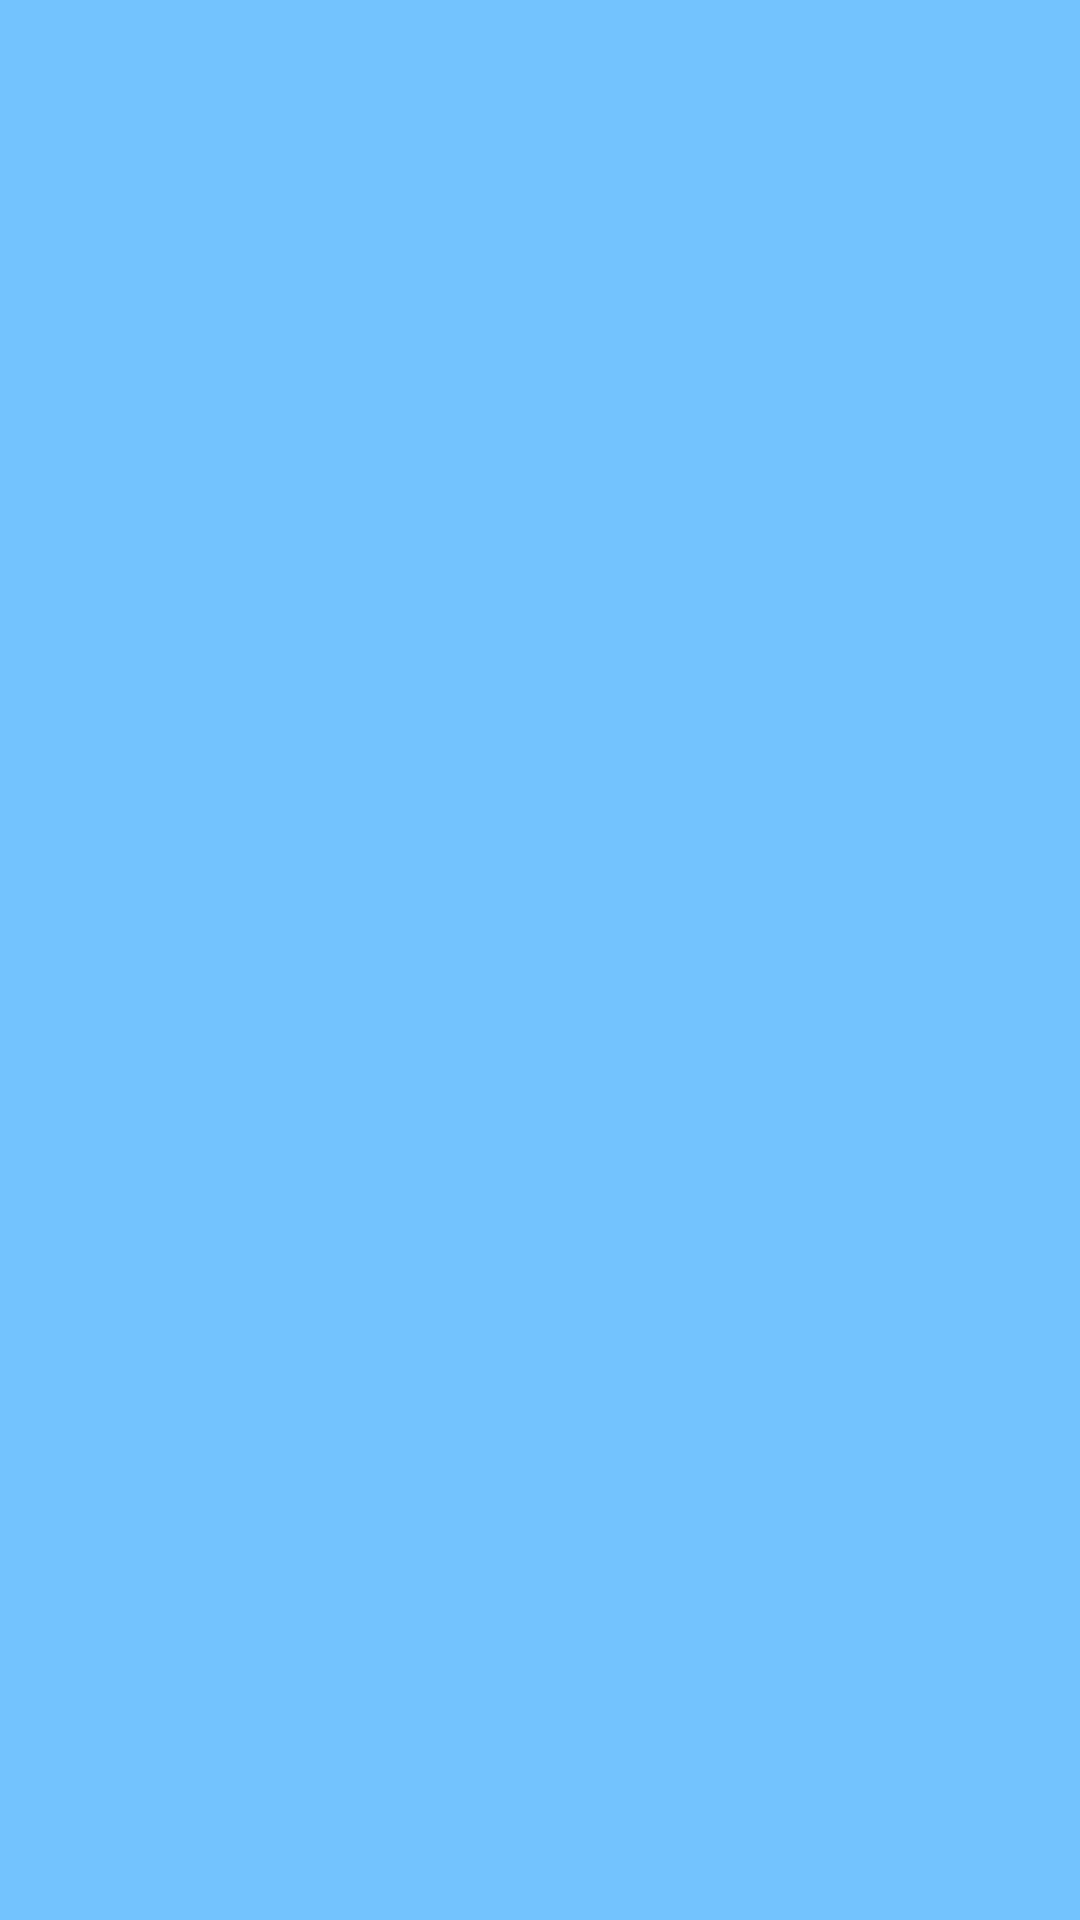 1080x1920 Maya Blue Solid Color Background